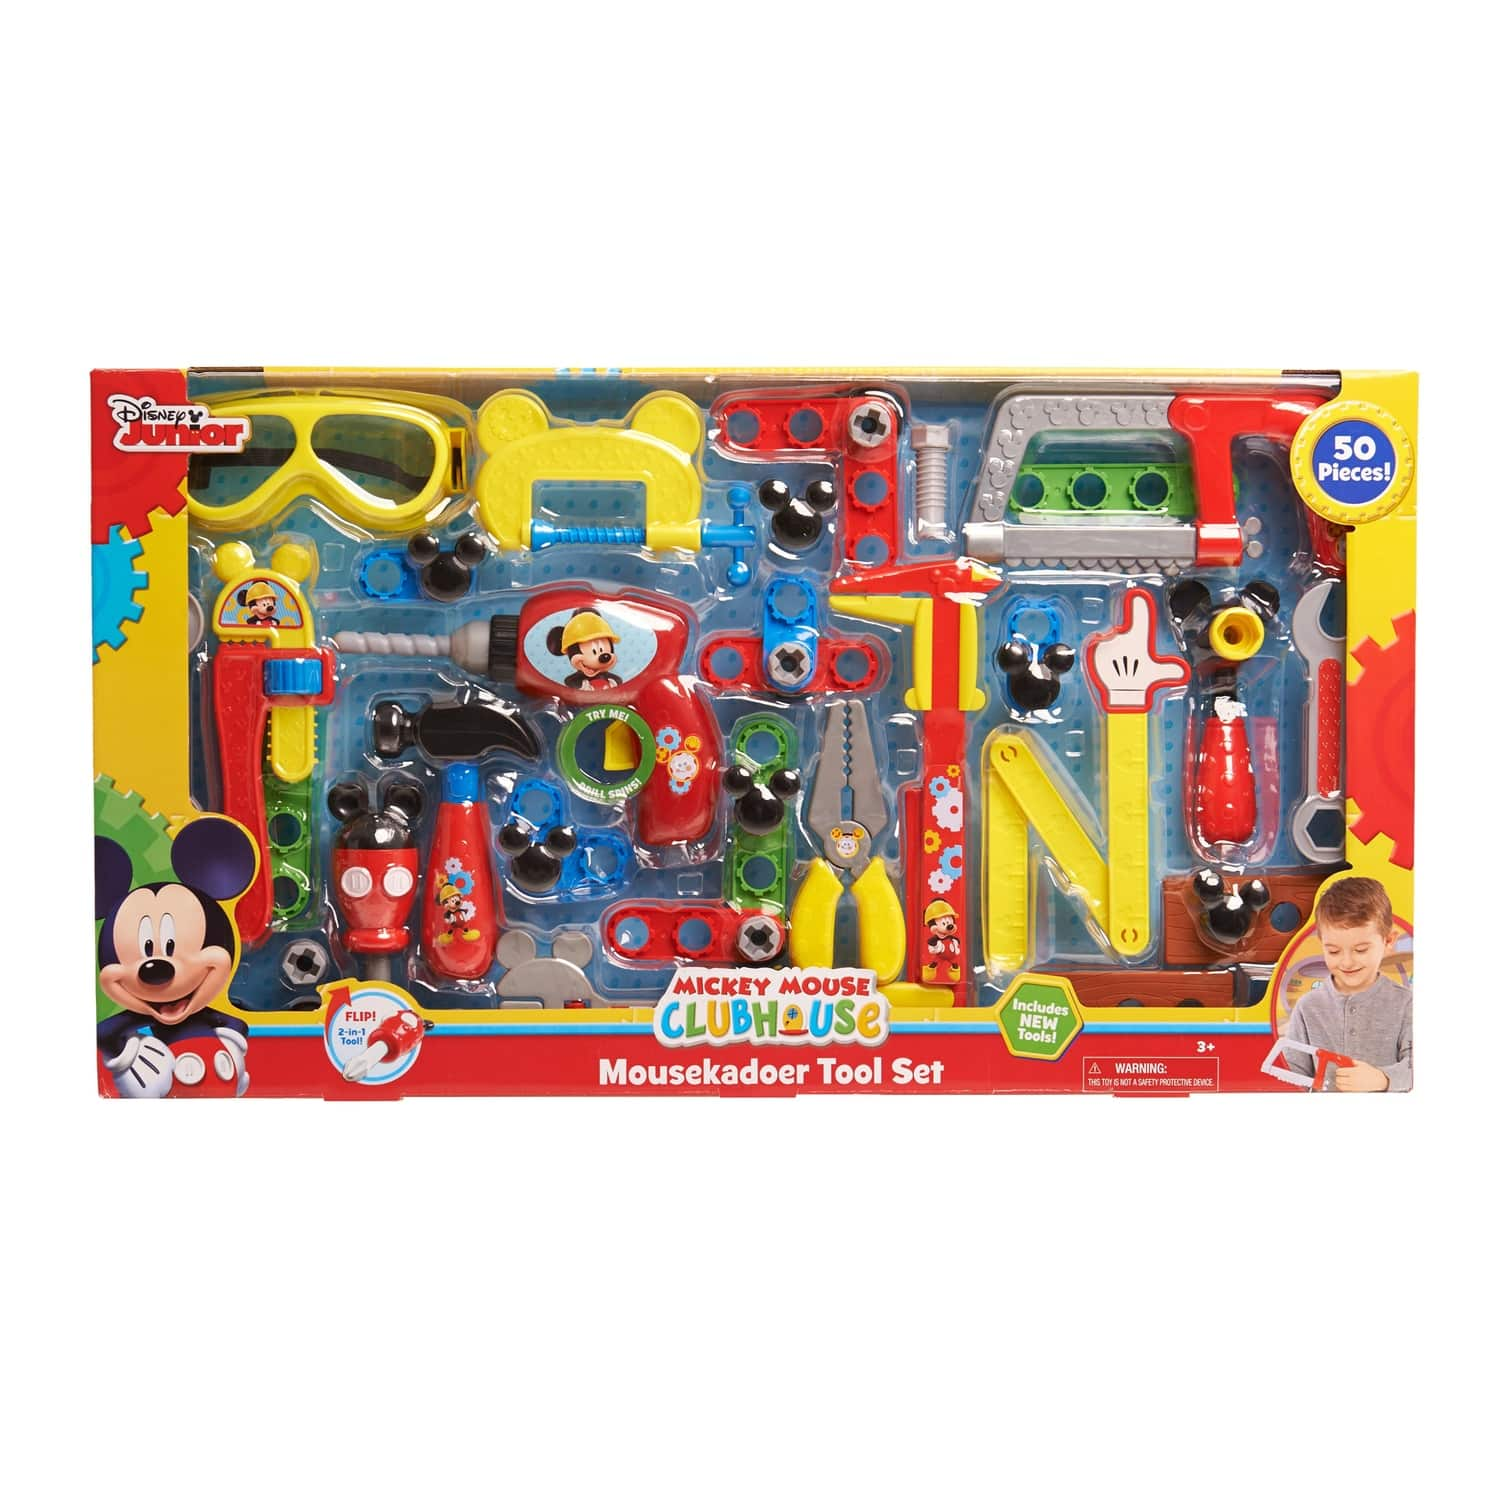 Kohls Disney's Mickey Mouse Clubhouse Mousekadoer Tool Set (50 pieces) $9.99 plus shipping